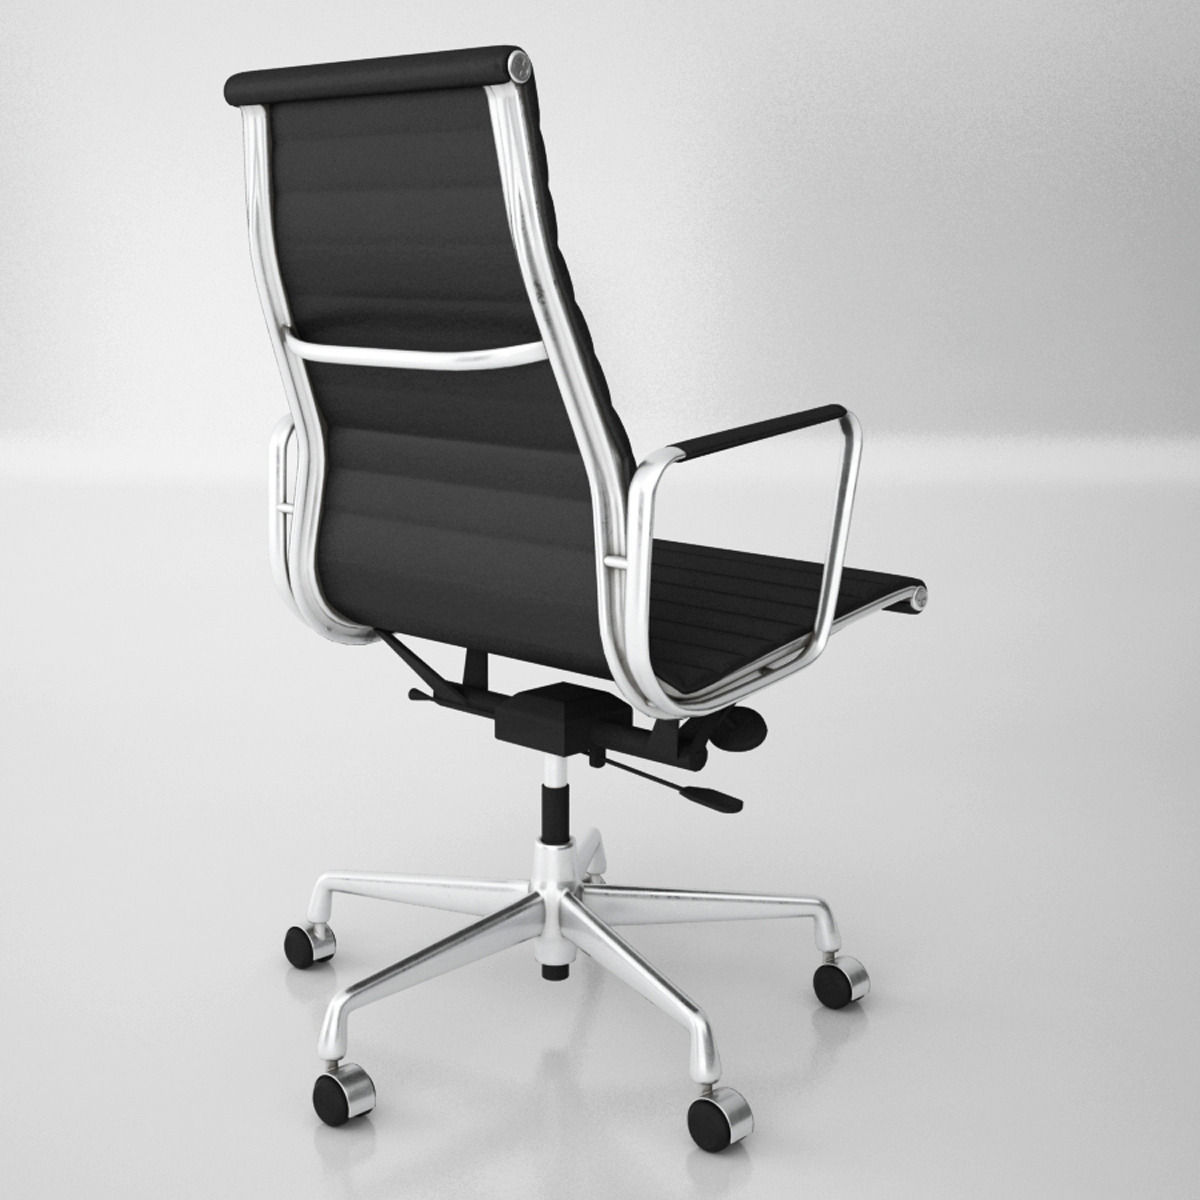 Vitra Aluminium Office Chairs Model Max Obj Fbx 4